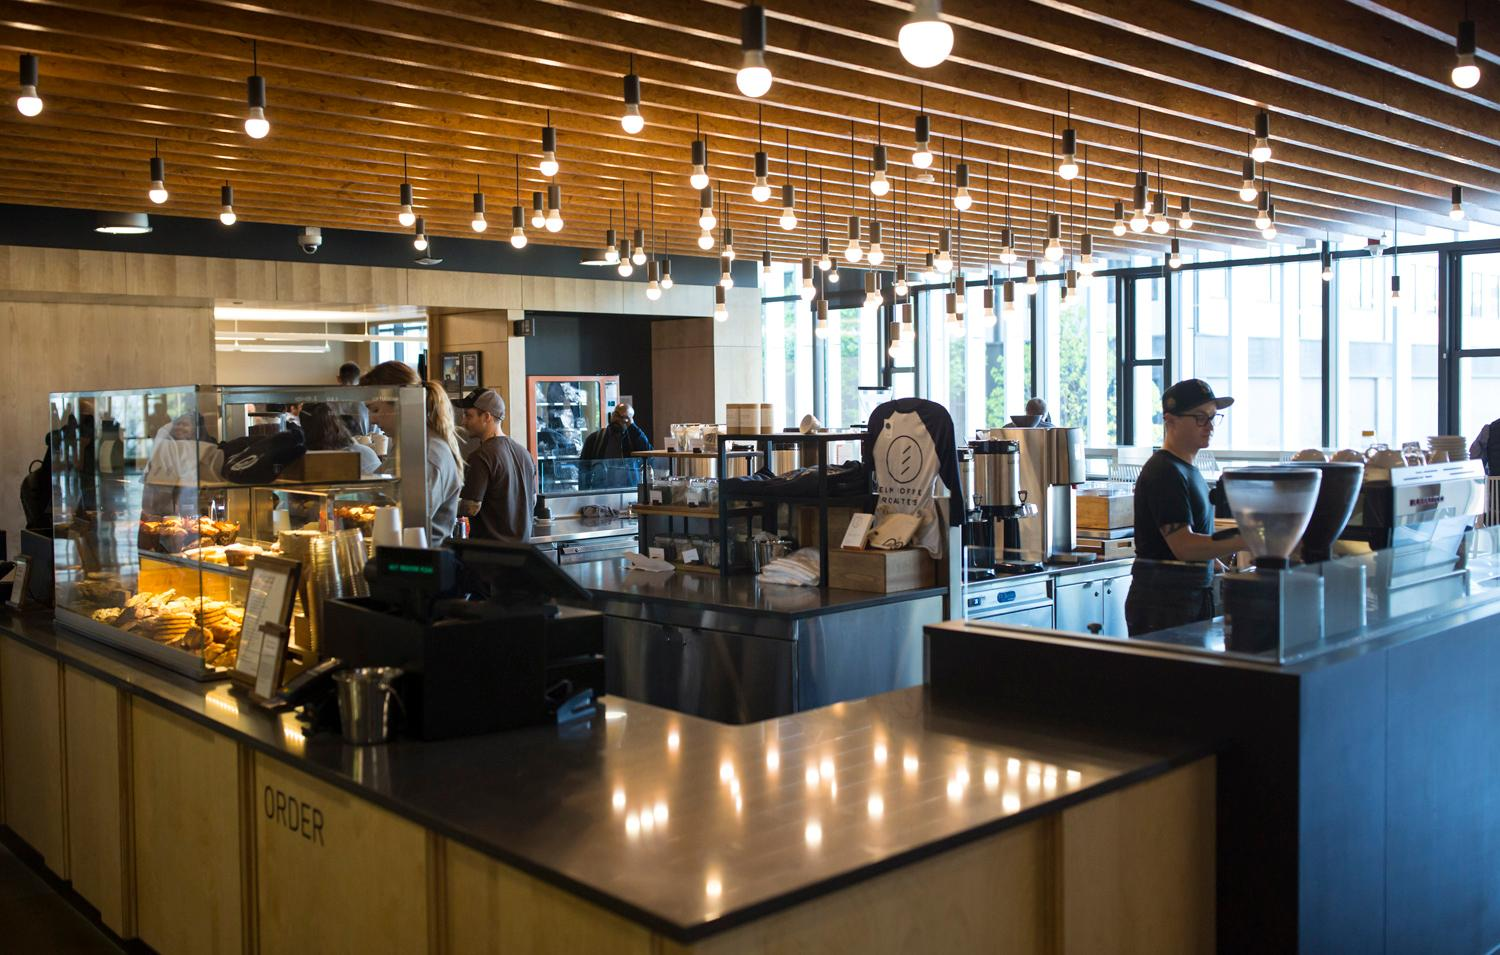 <p>#10. Elm Coffee Roasters / Day One Building: Why Elm? E-L-M are actually the initials of the owner's wife, who happens to work in the Day One Building of Amazon!</p><p>Did you know there are 17 total coffee shops on the Amazon campus in South Lake Union? The tech company graciously allowed on us on their usually secretive campus to check out as many as we could get to in a two hour window (spoiler alert - it was 12). So...here they are! You'll have to use your imagination for the final missing five. We were quite please to see that all the coffee shops are local coffee roasters. (Image: Sy Bean / Seattle Refined)</p>